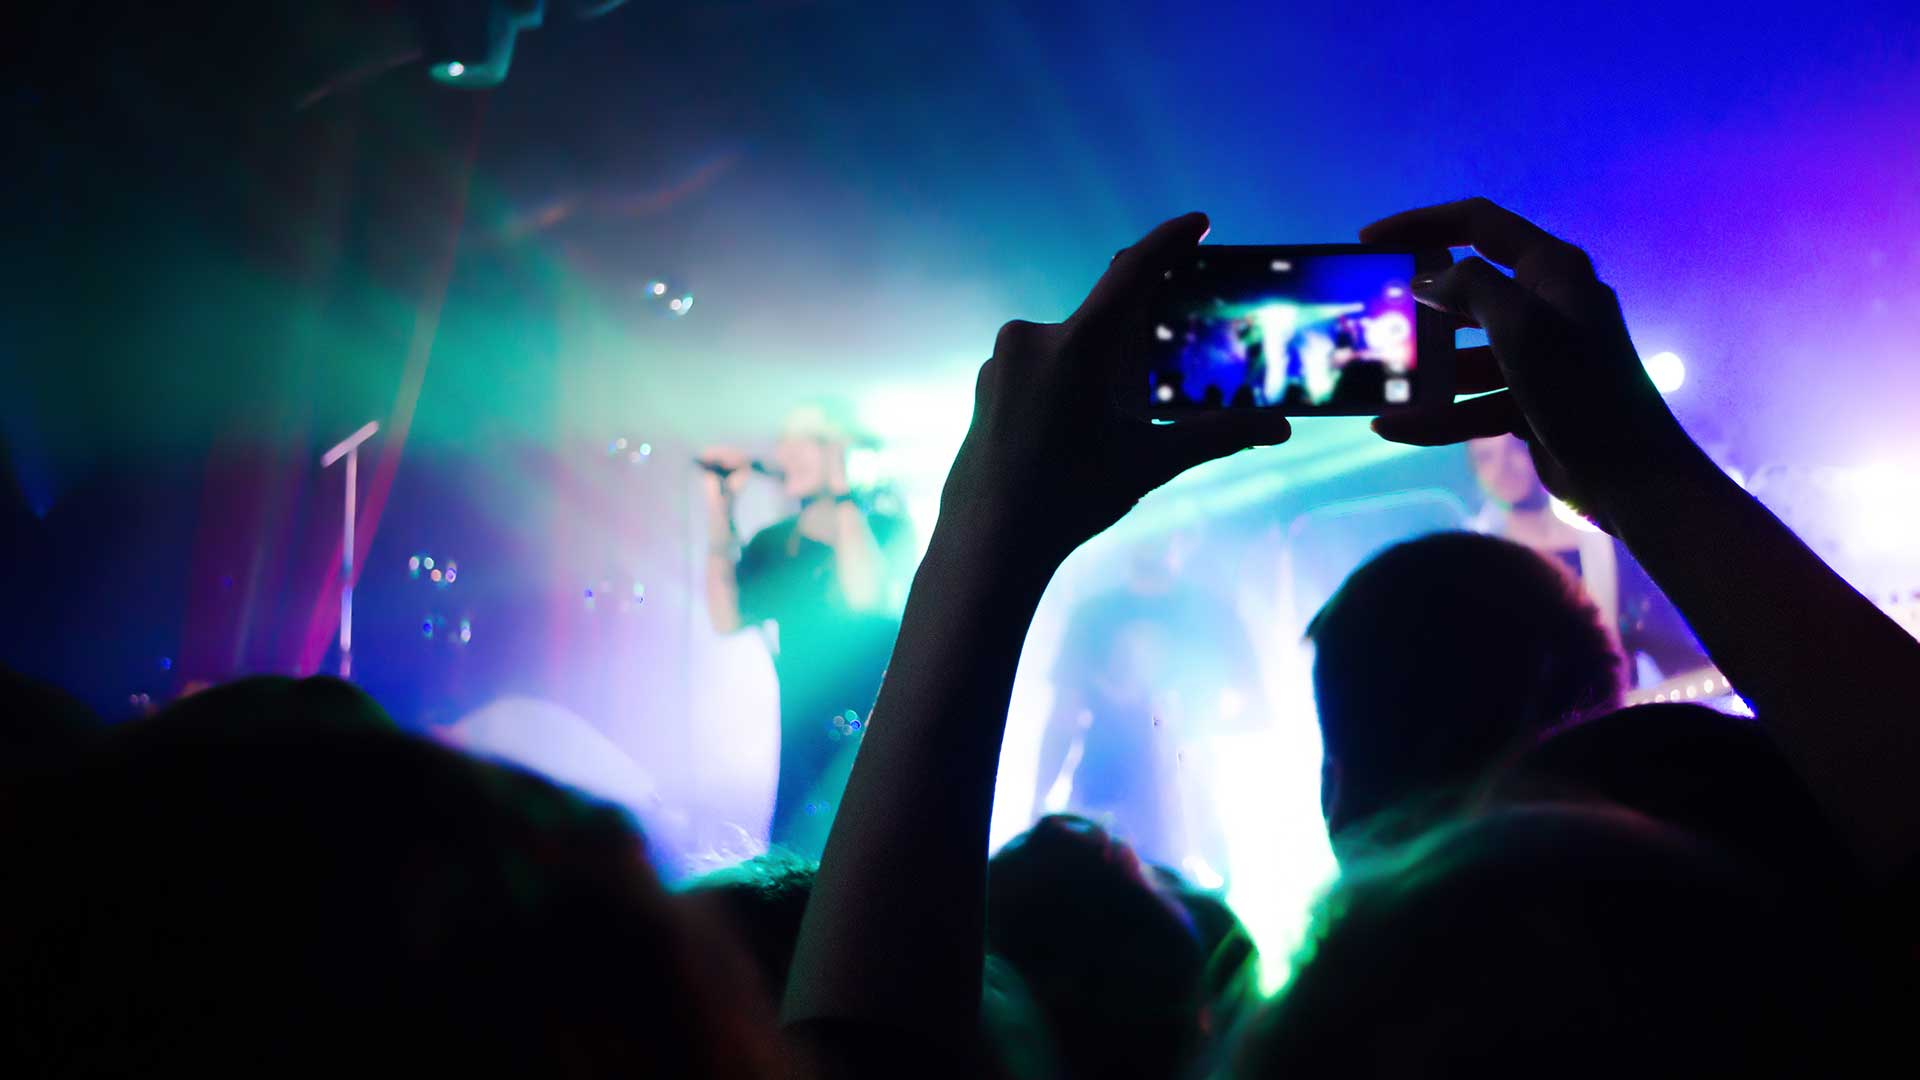 First-Ave-Offers-New-Ticket-Pricing-to-Stand-Behind-Tall-Dude-Snapchating-Entire-Concert.jpg